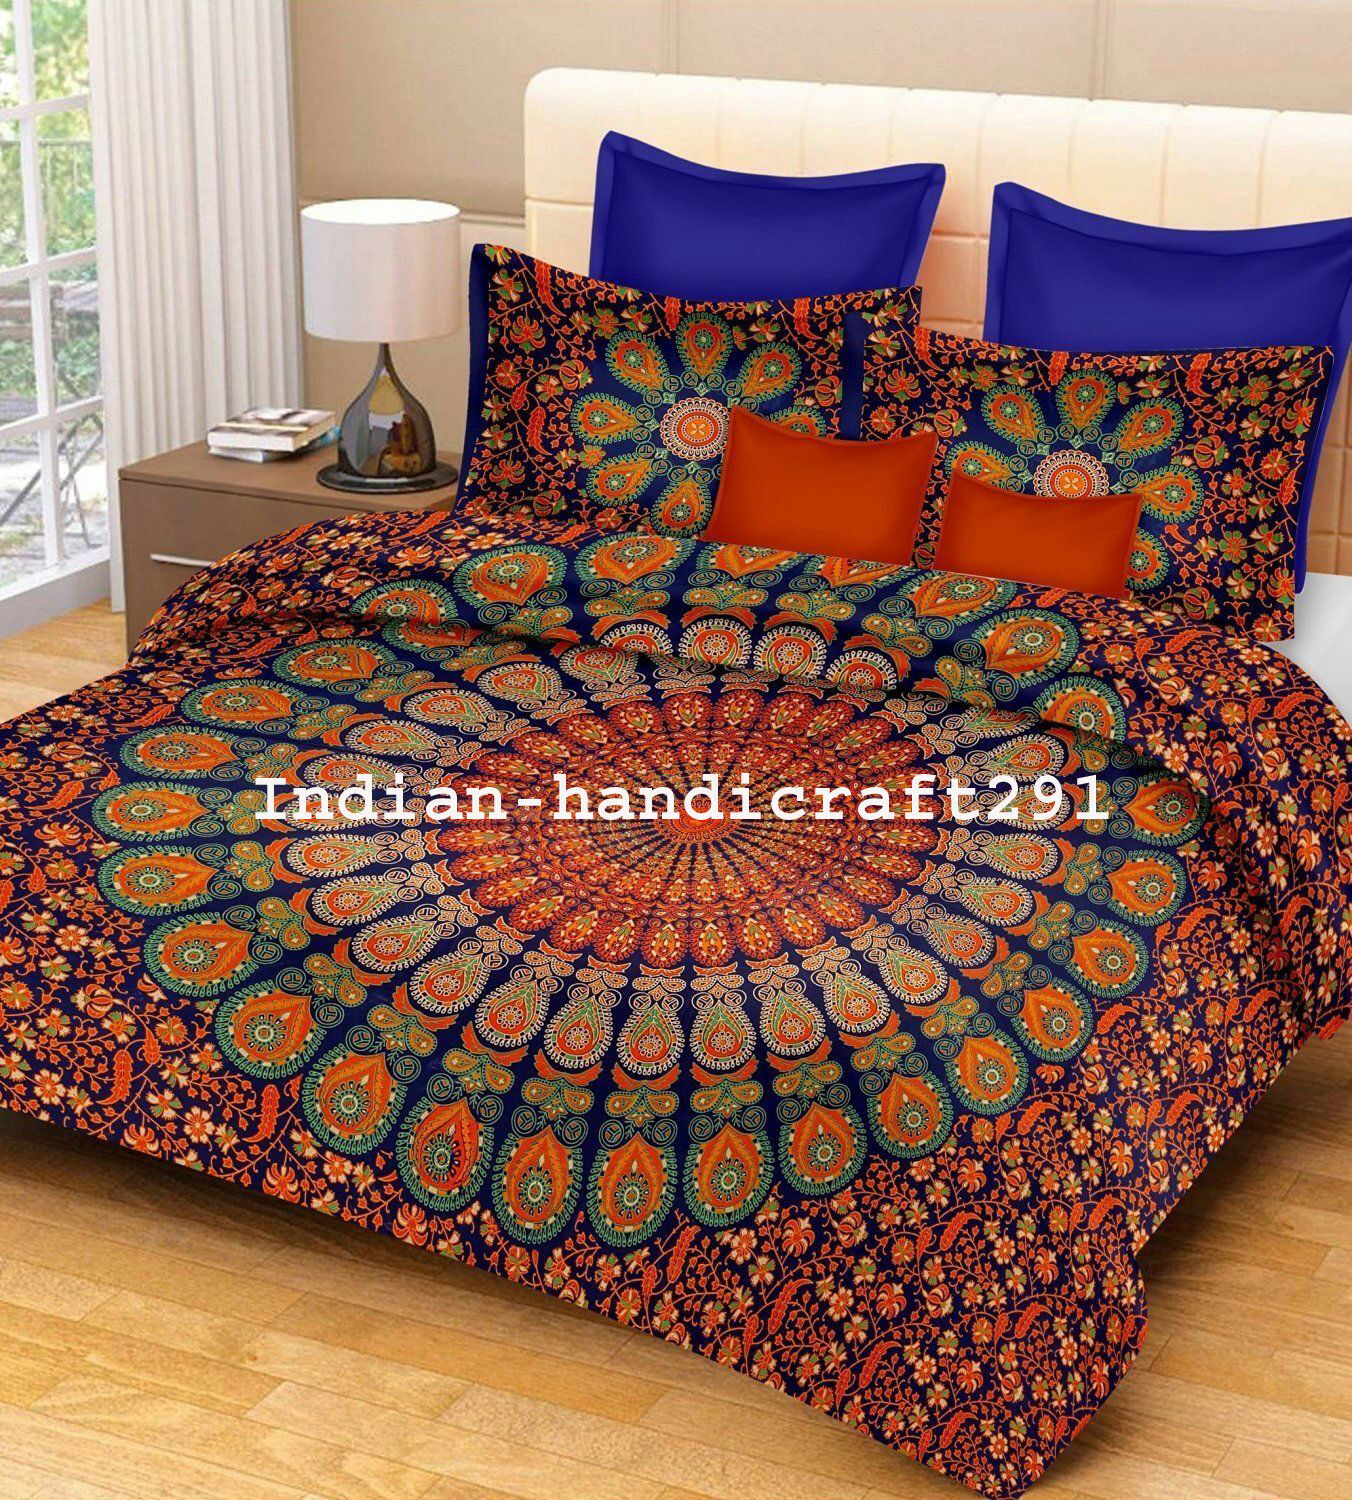 Indian Mandala Duvet Doona Cover Queen Size Cotton Comforter Quilt Blanket Cover